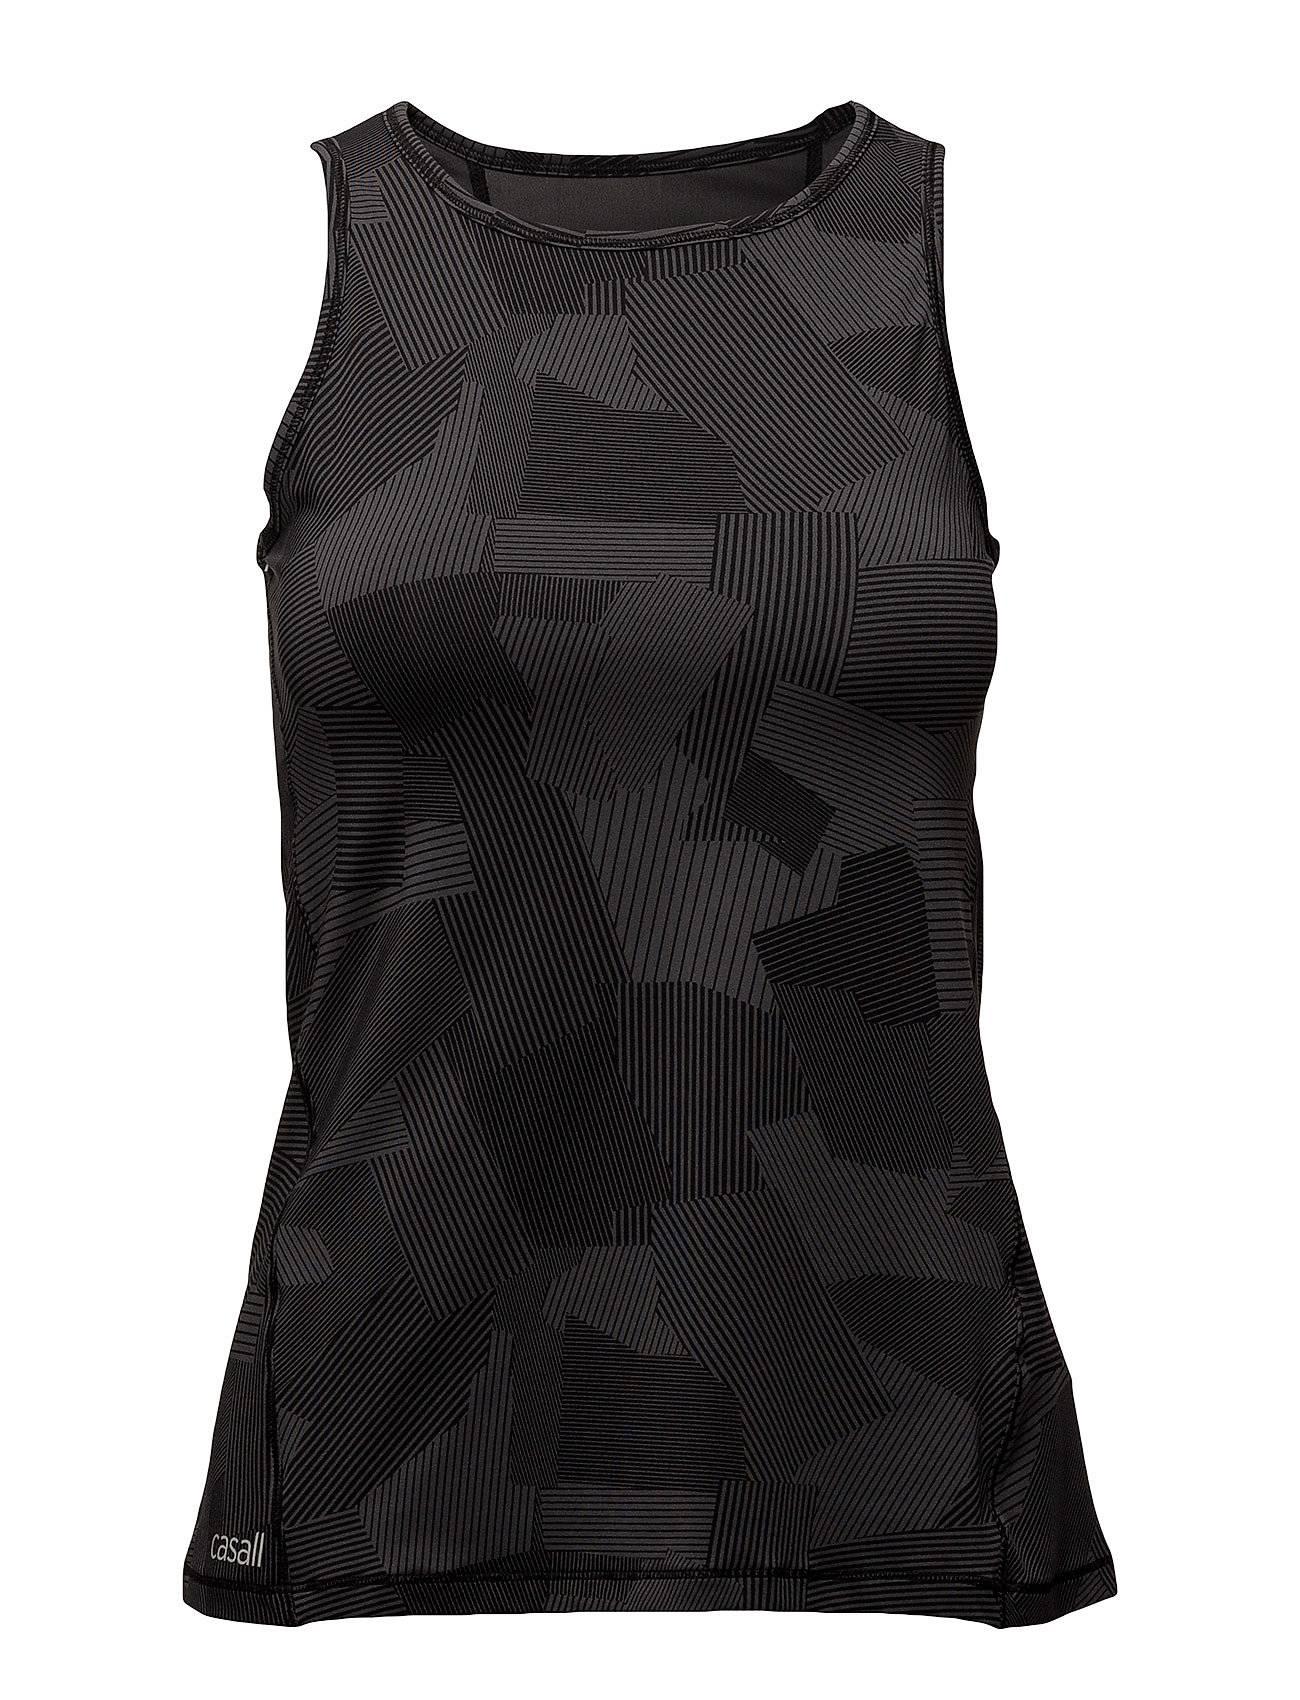 Casall Straight Cut Tank